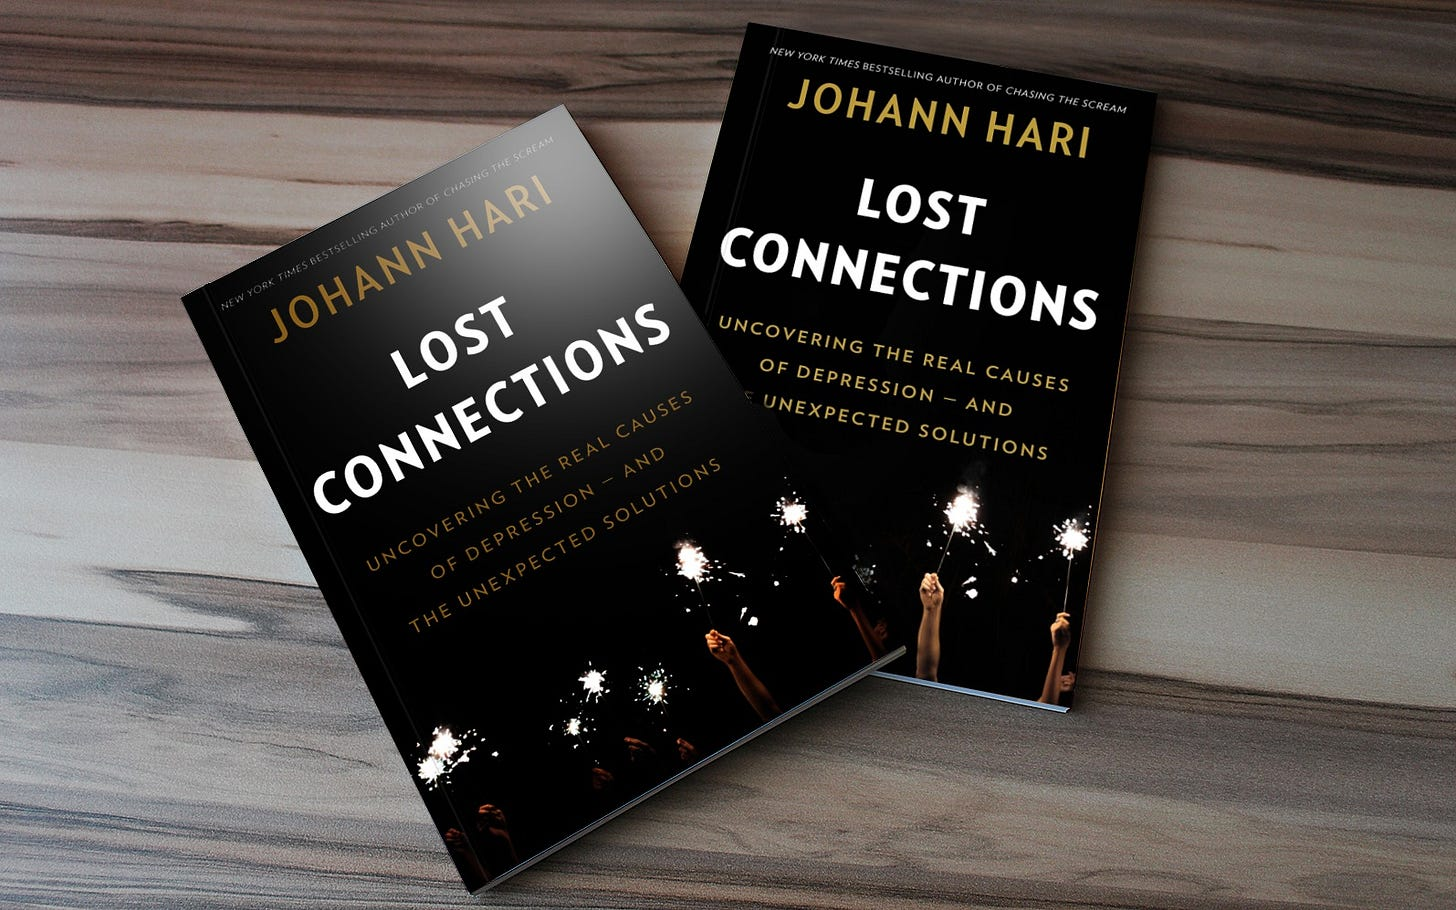 Lost Connections – Uncovering the Real Causes of Depression – and the  Unexpected Solutions